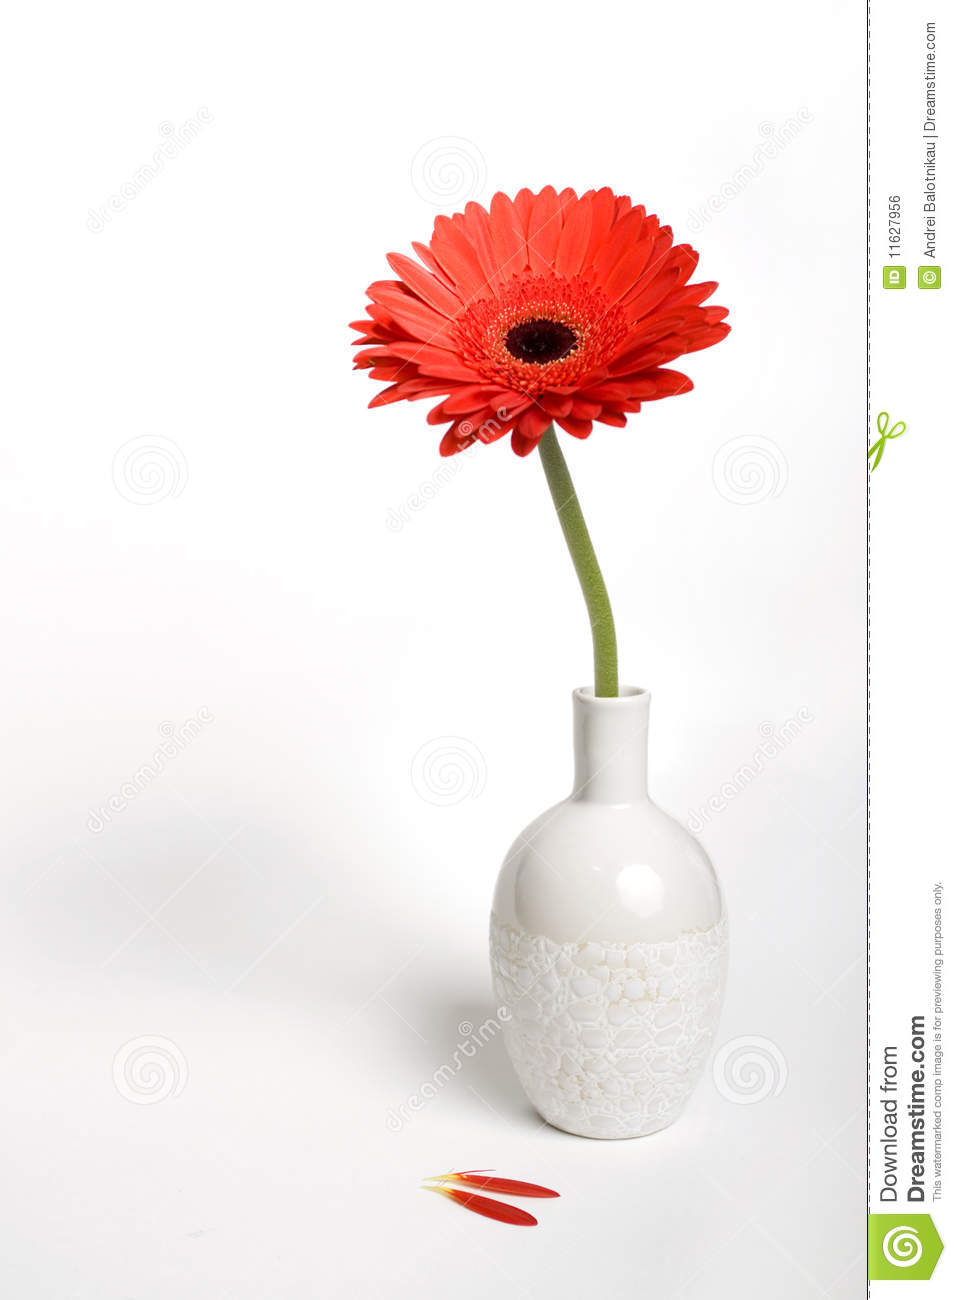 Gerbera Daisy In A Vase Stock Photo Image Of Tranquil 11627956